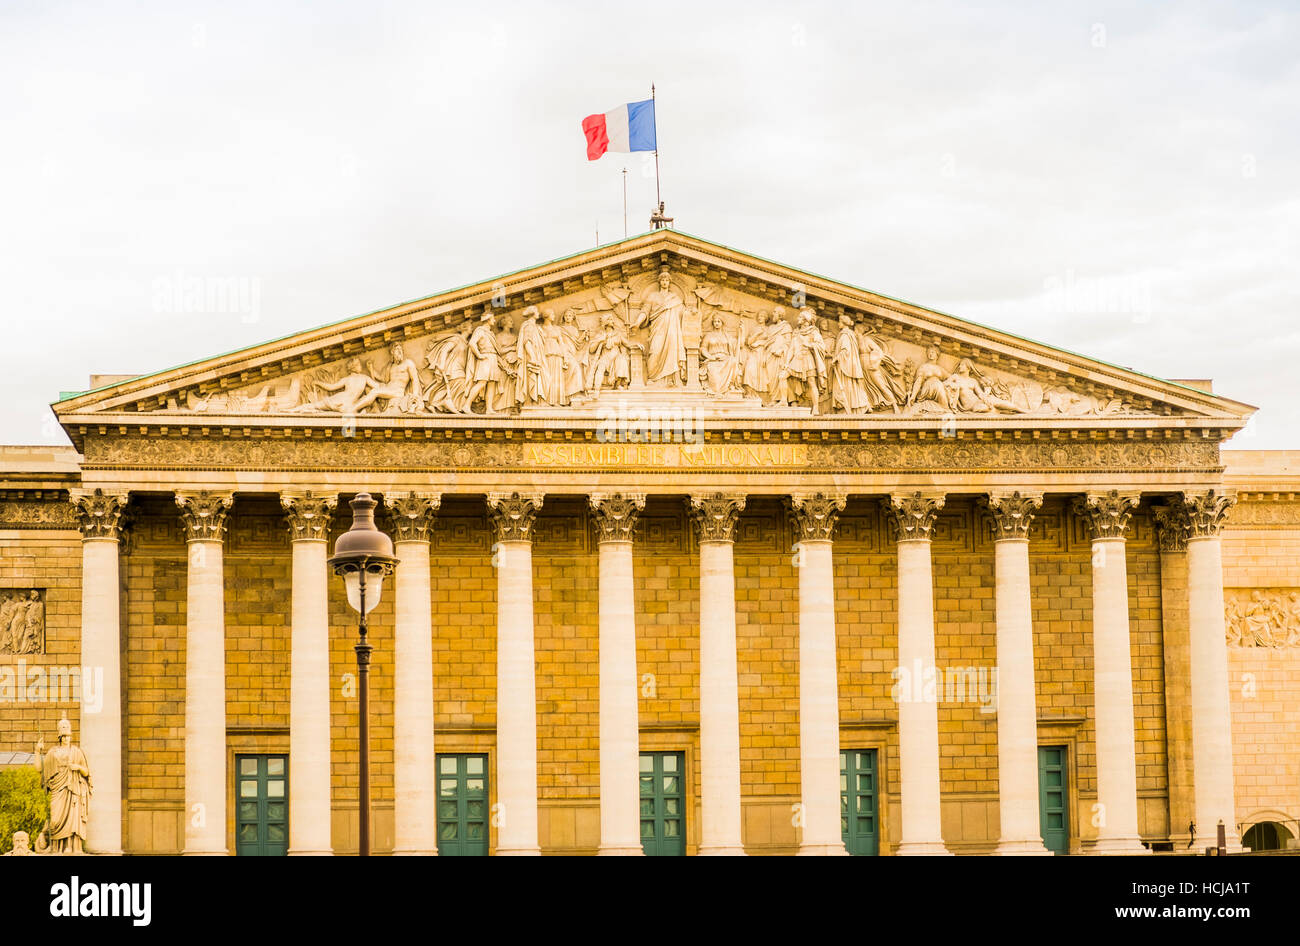 assemblée nationale, national assembly, outside view - Stock Image